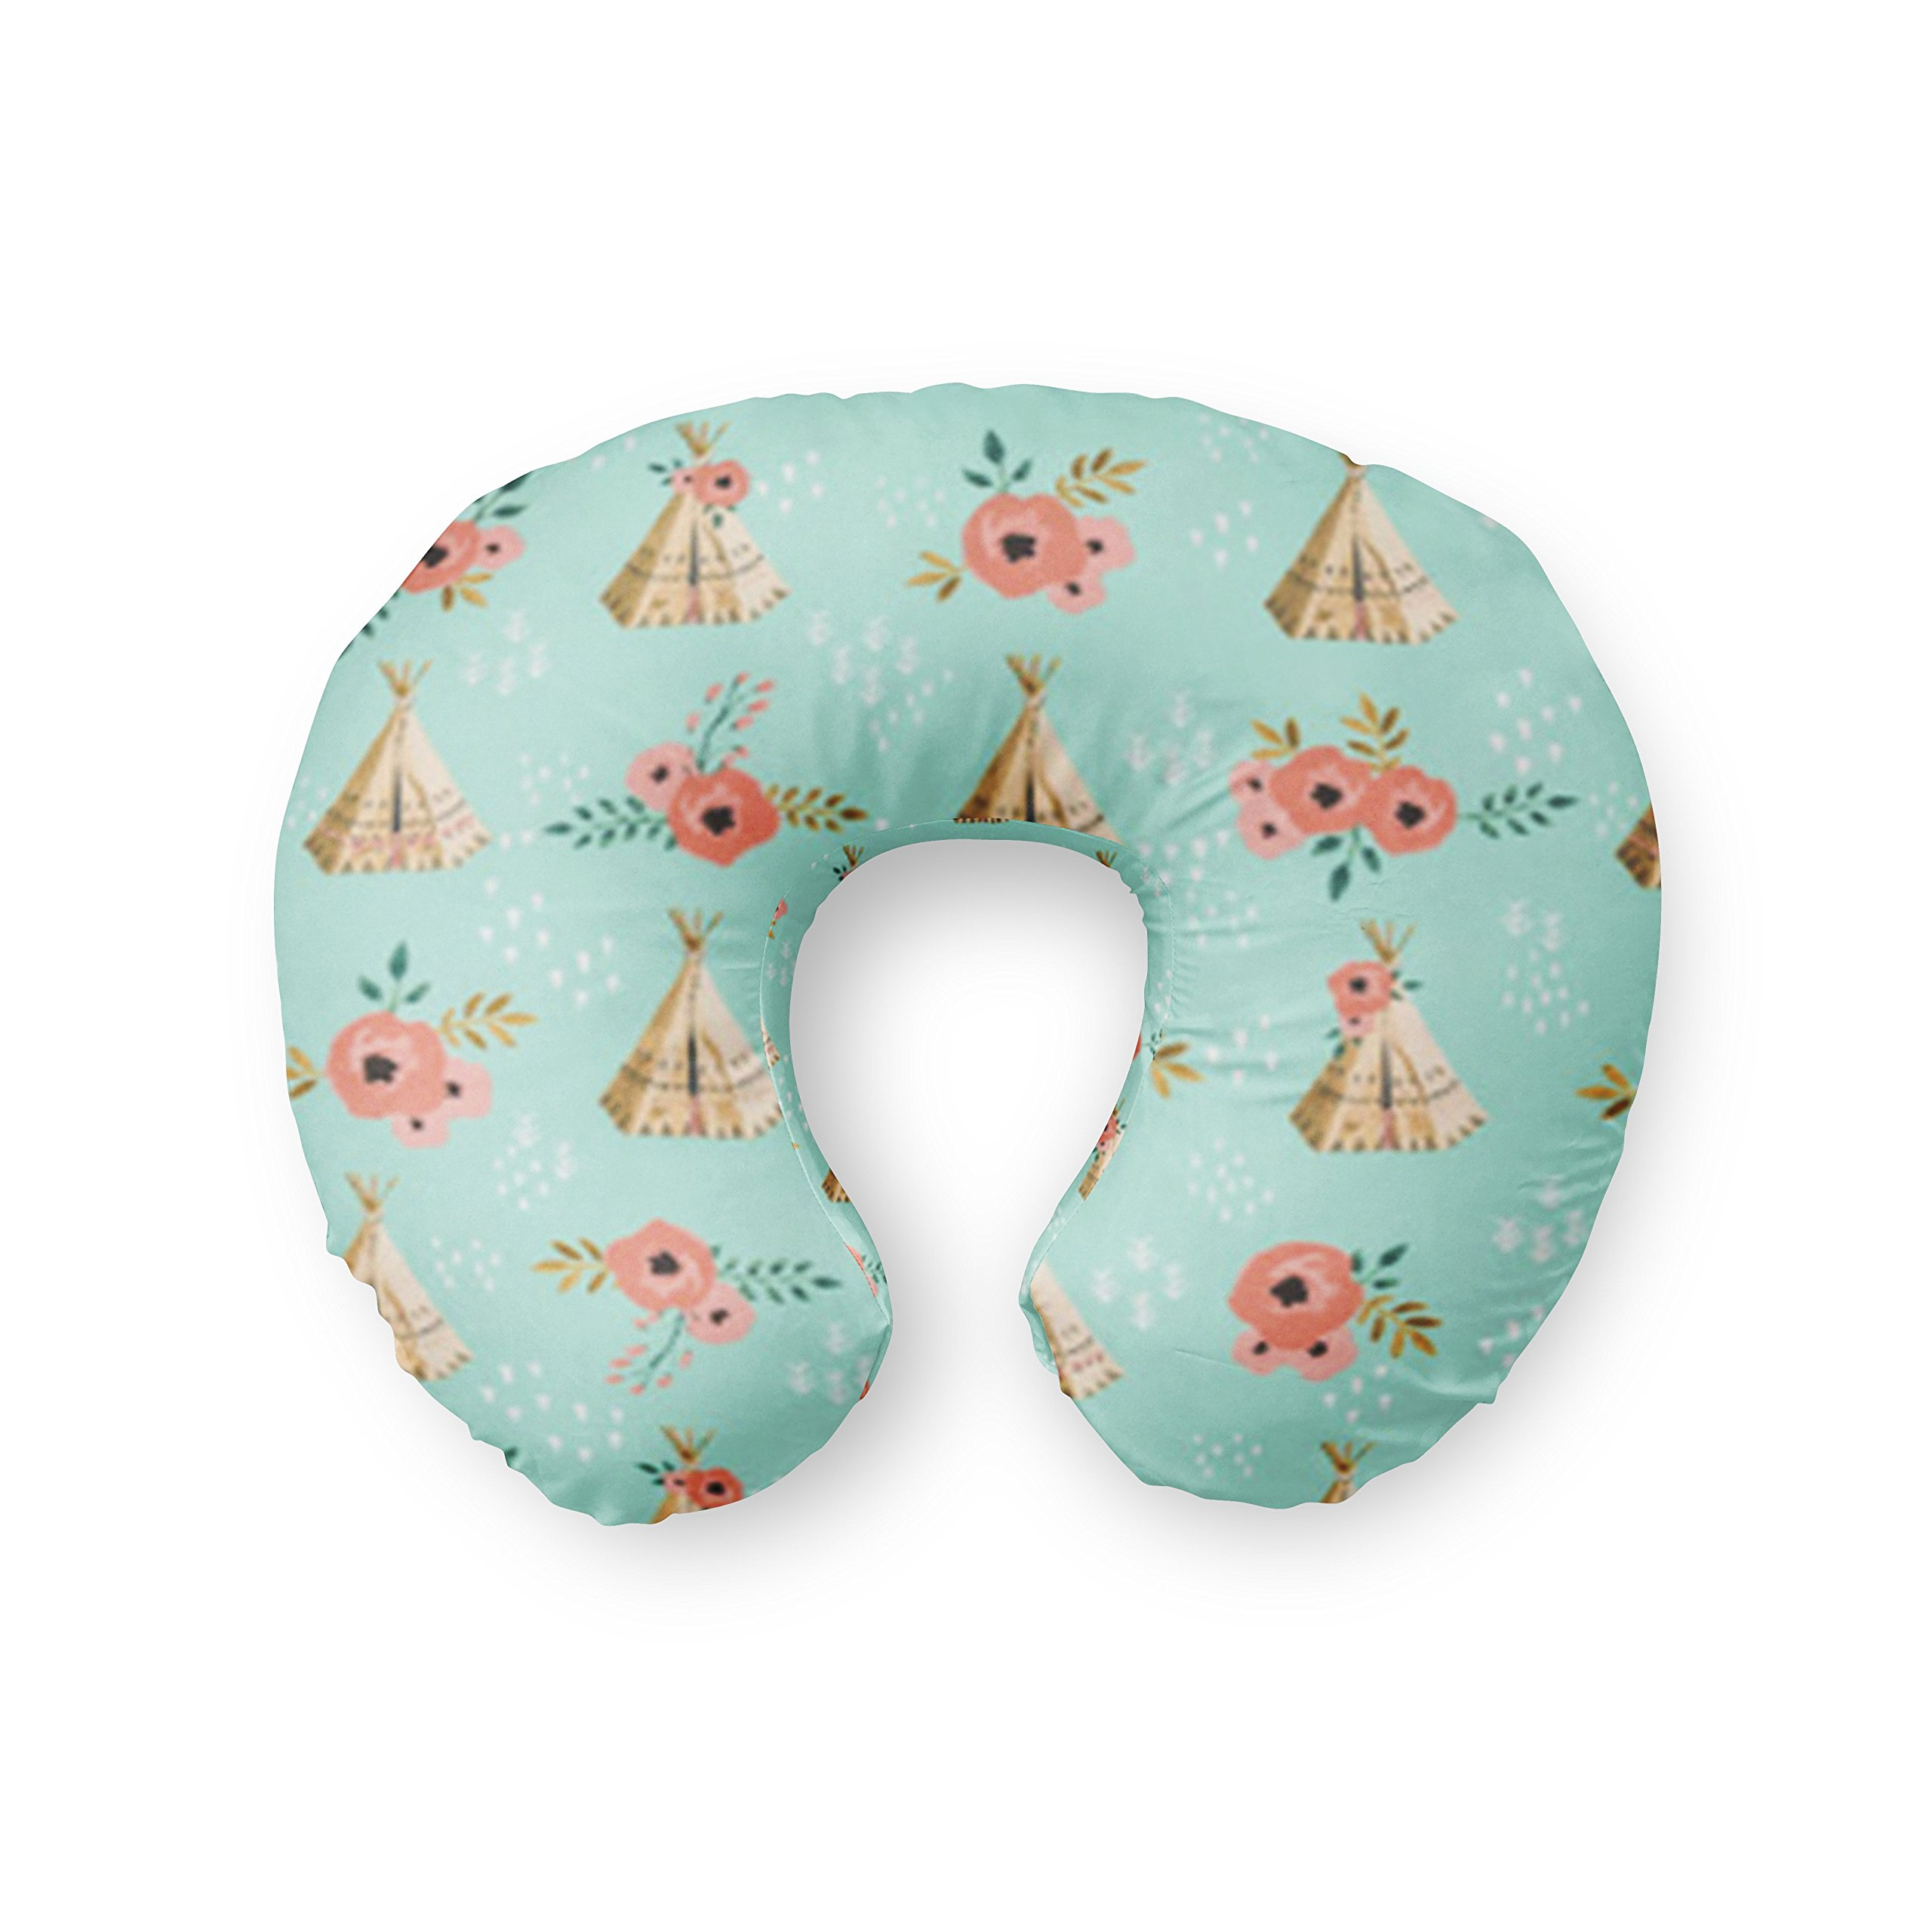 Nursing Pillow Cover in Mint Teepees with coral floral - Handmade in the USA by Twig + Bird